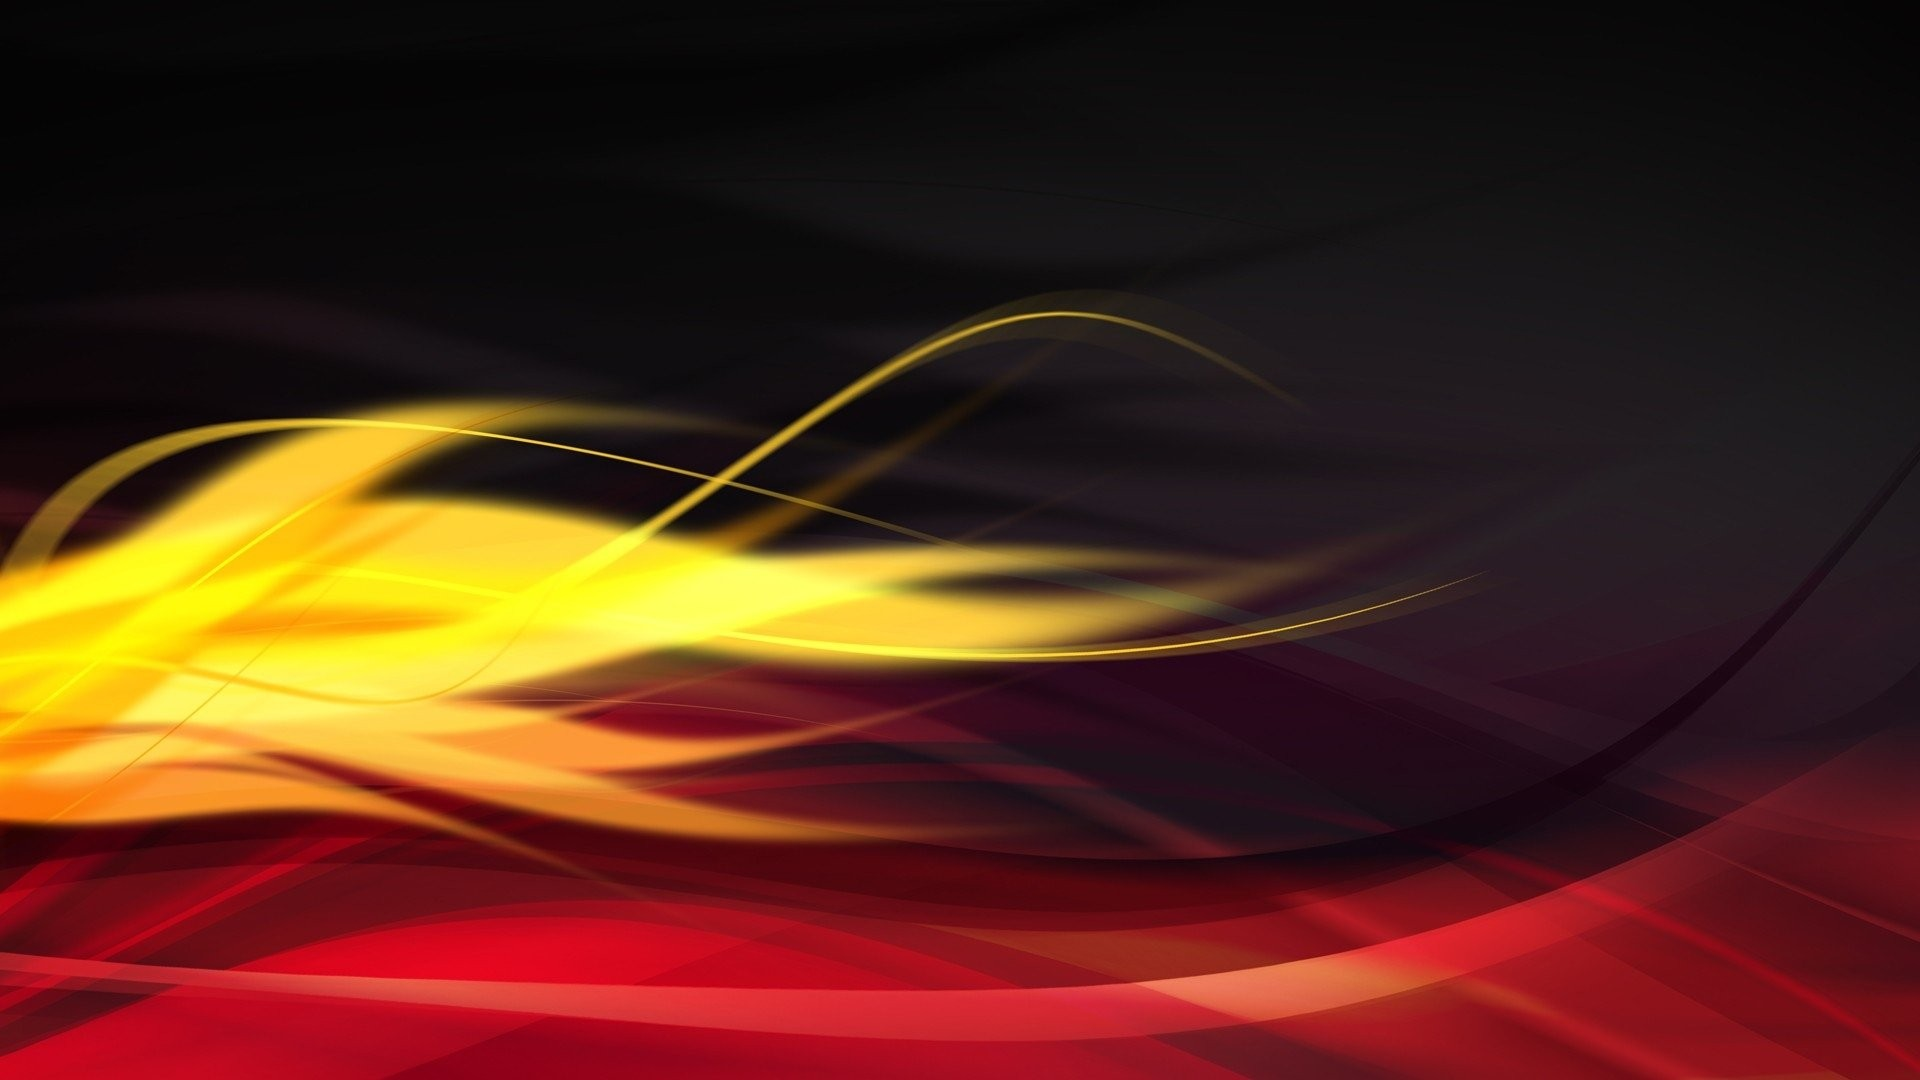 flames background download free